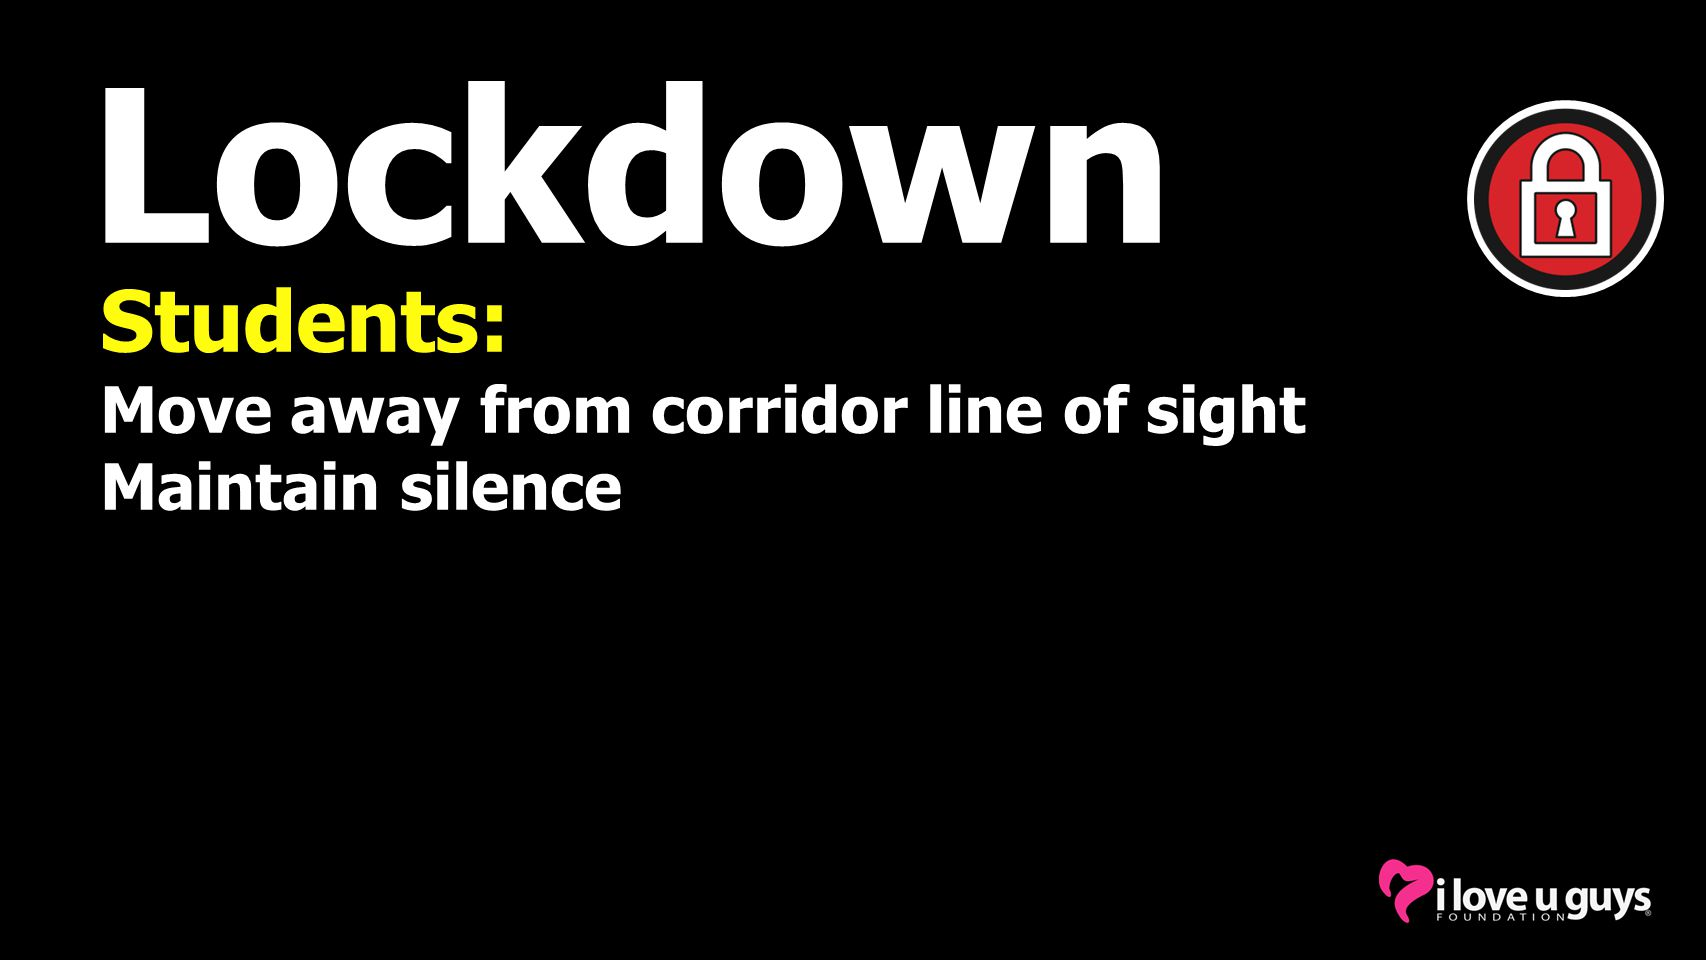 Lockdown Students: Move away from corridor line of sight